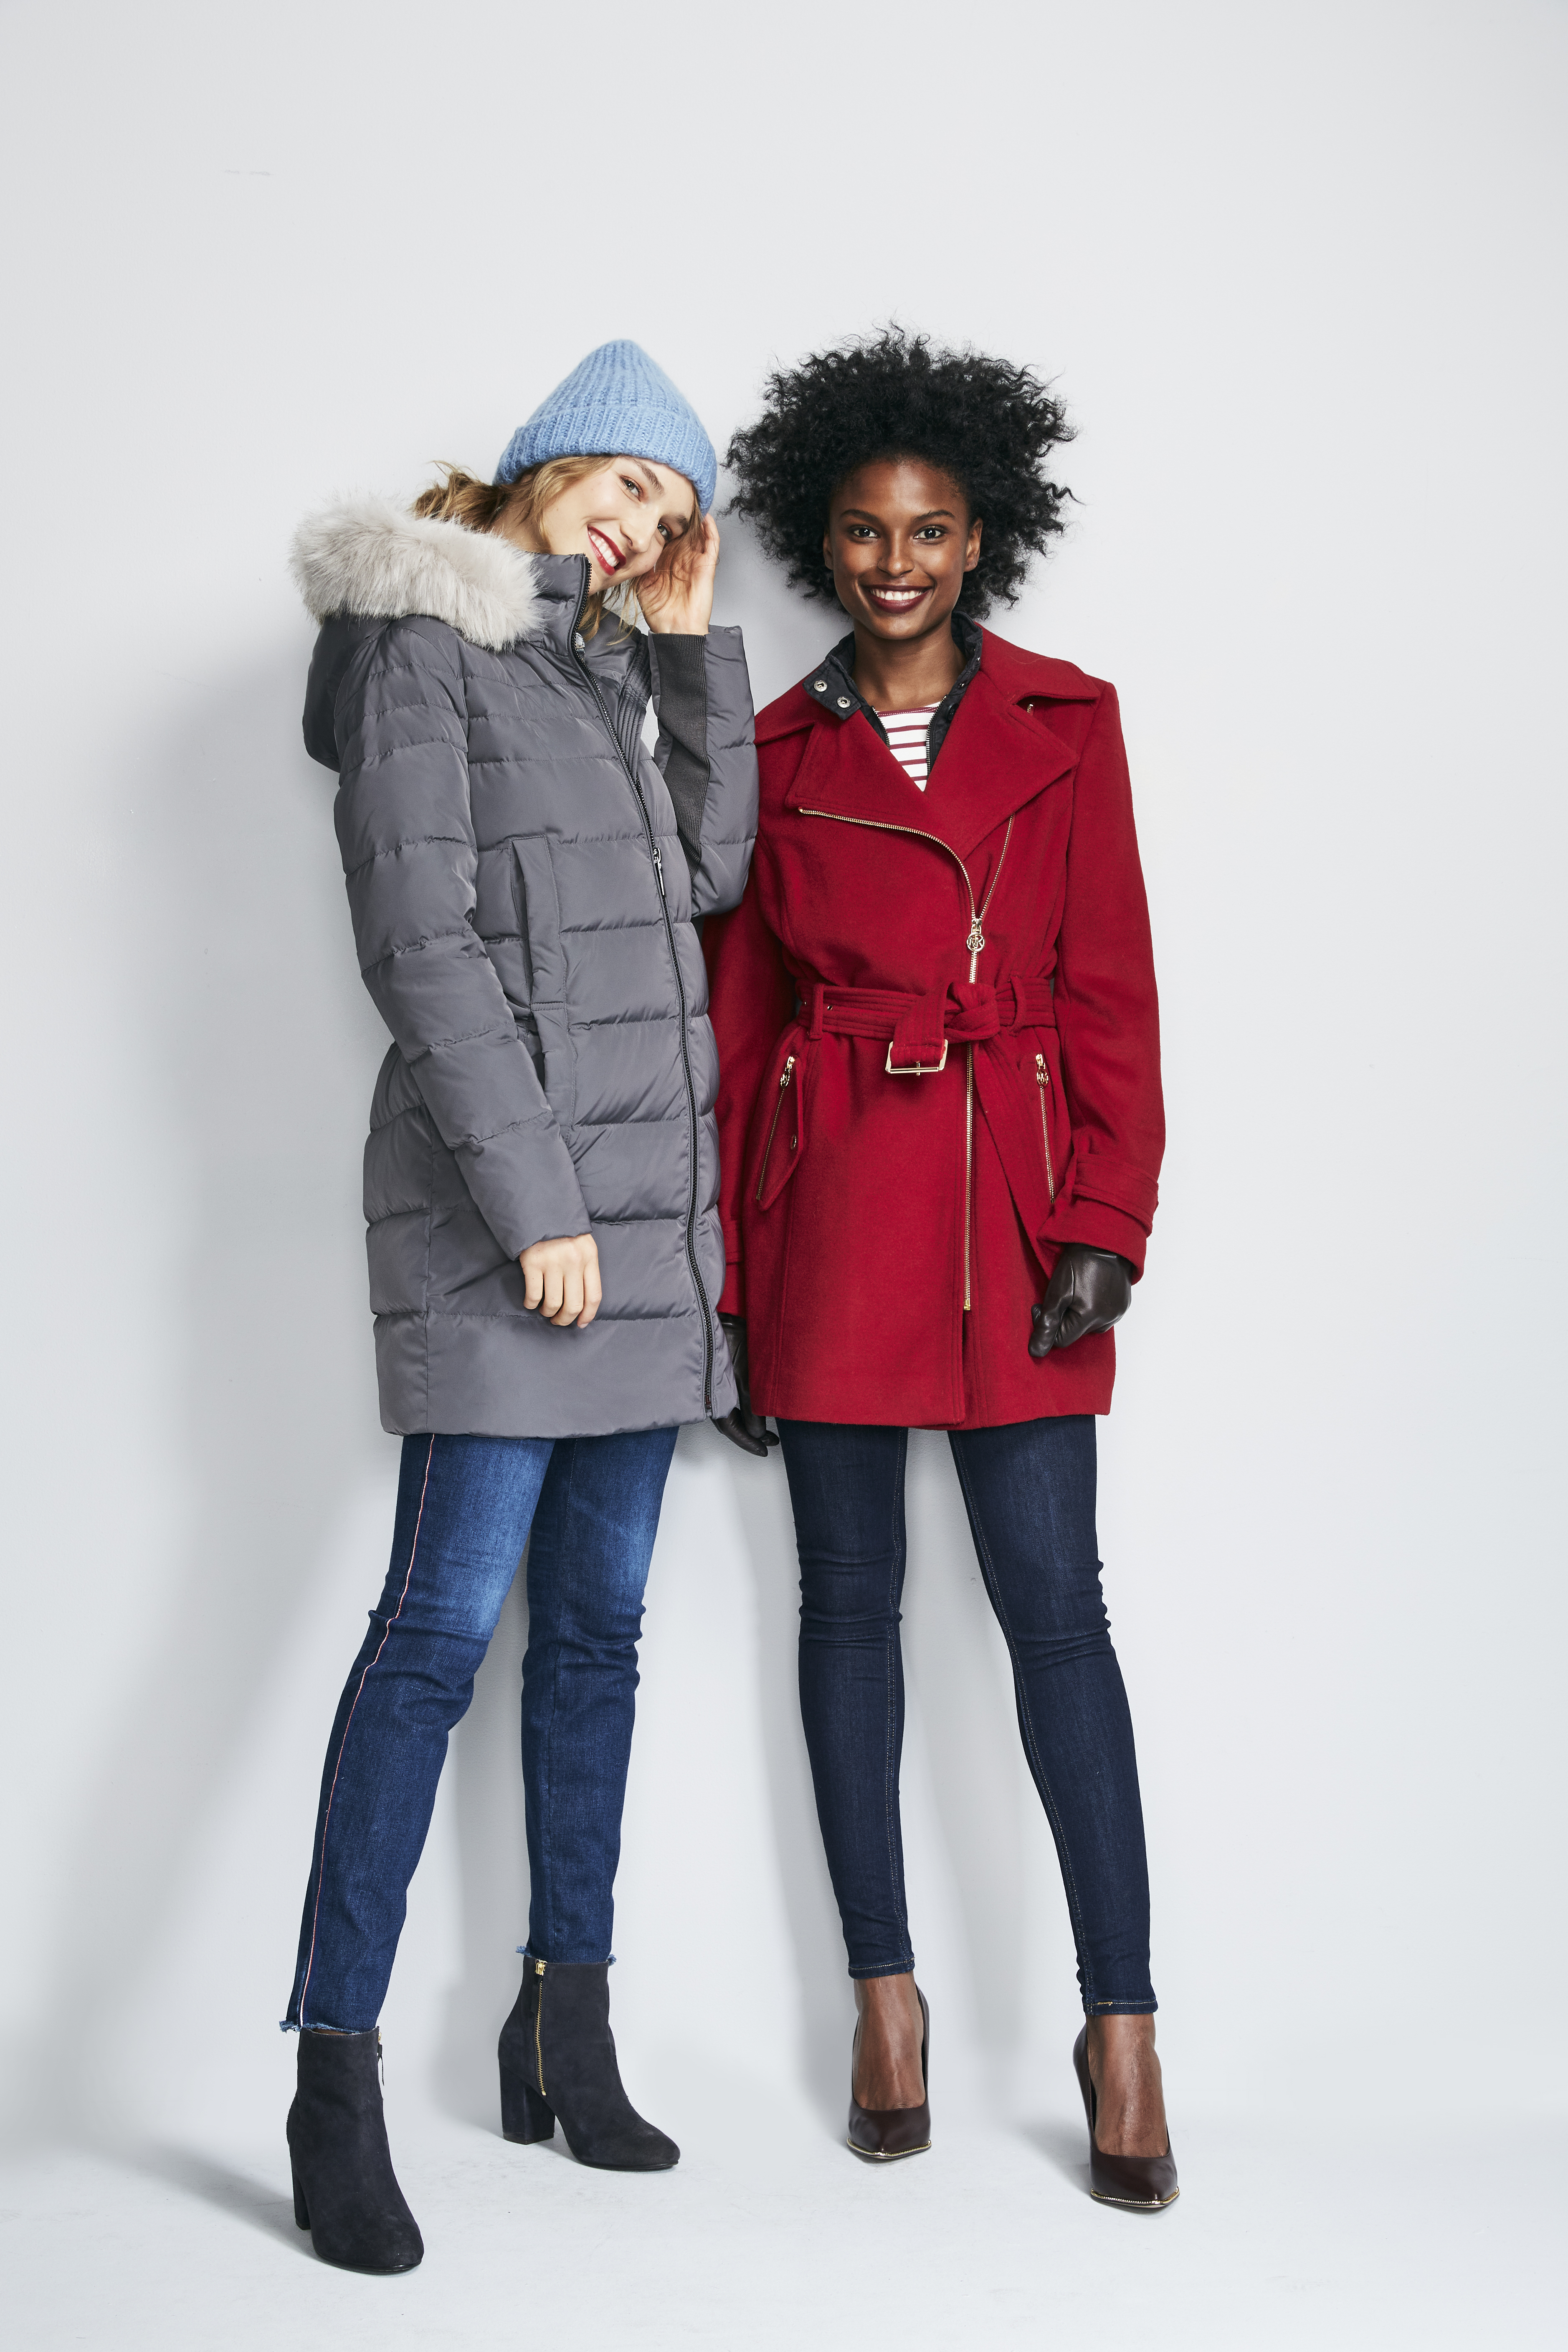 f53ad82cf509e Macy's Black Friday and Cyber Week Wonder Deals | Business Wire